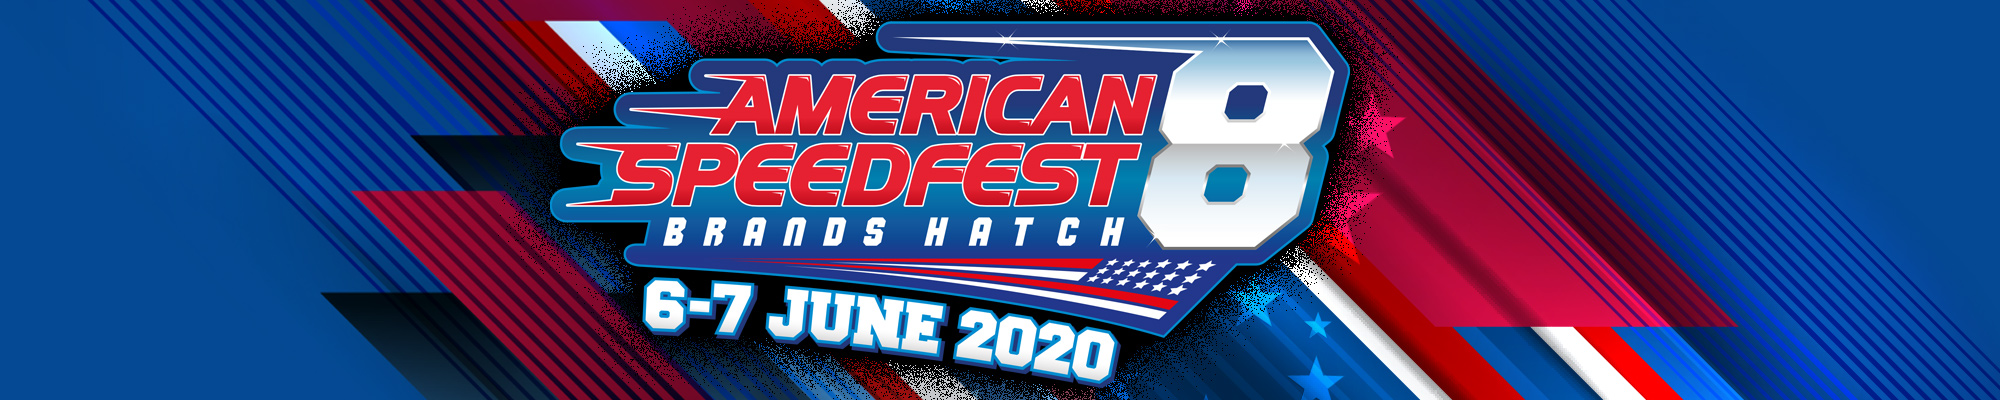 American SpeedFest 8 - POSTPONED